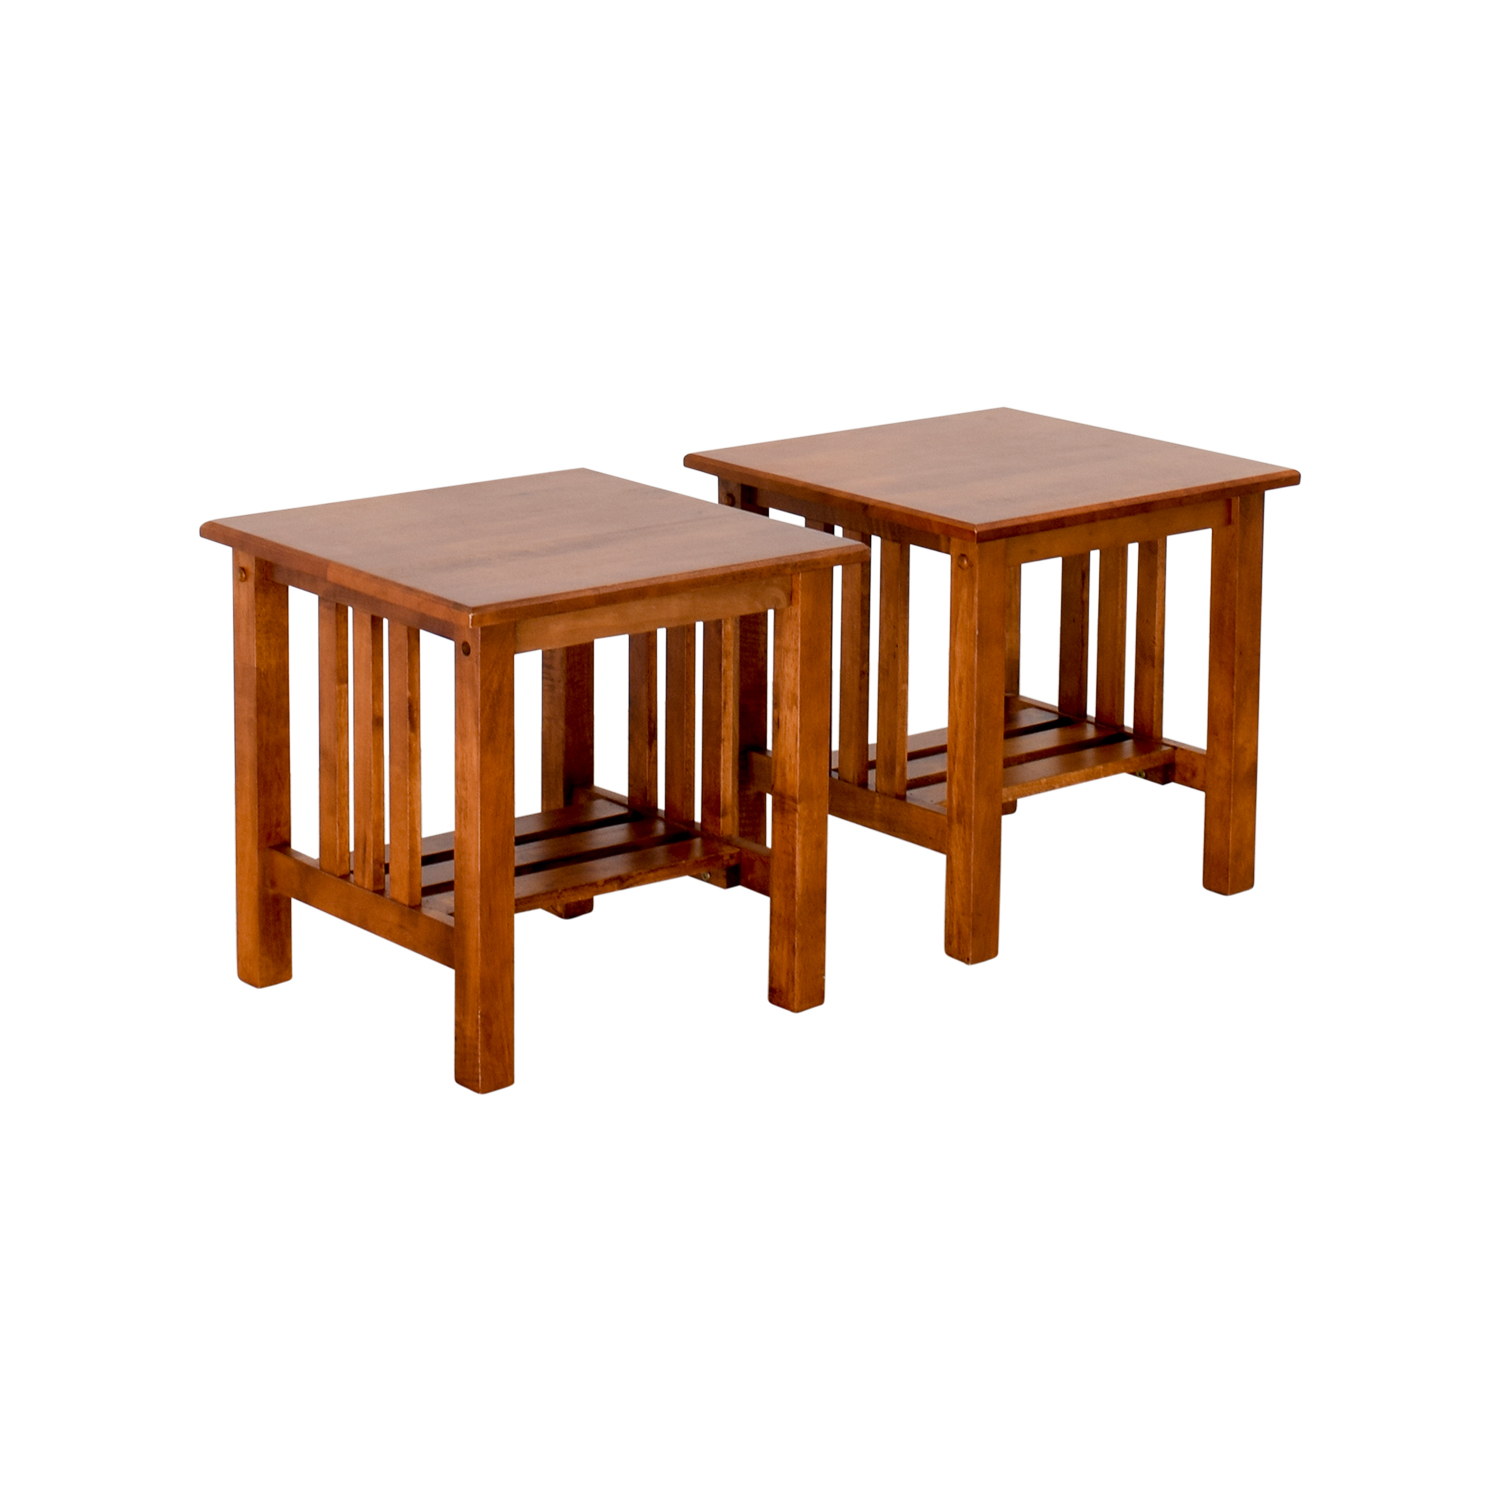 62% OFF Craftsman Style Wood End Tables Tables